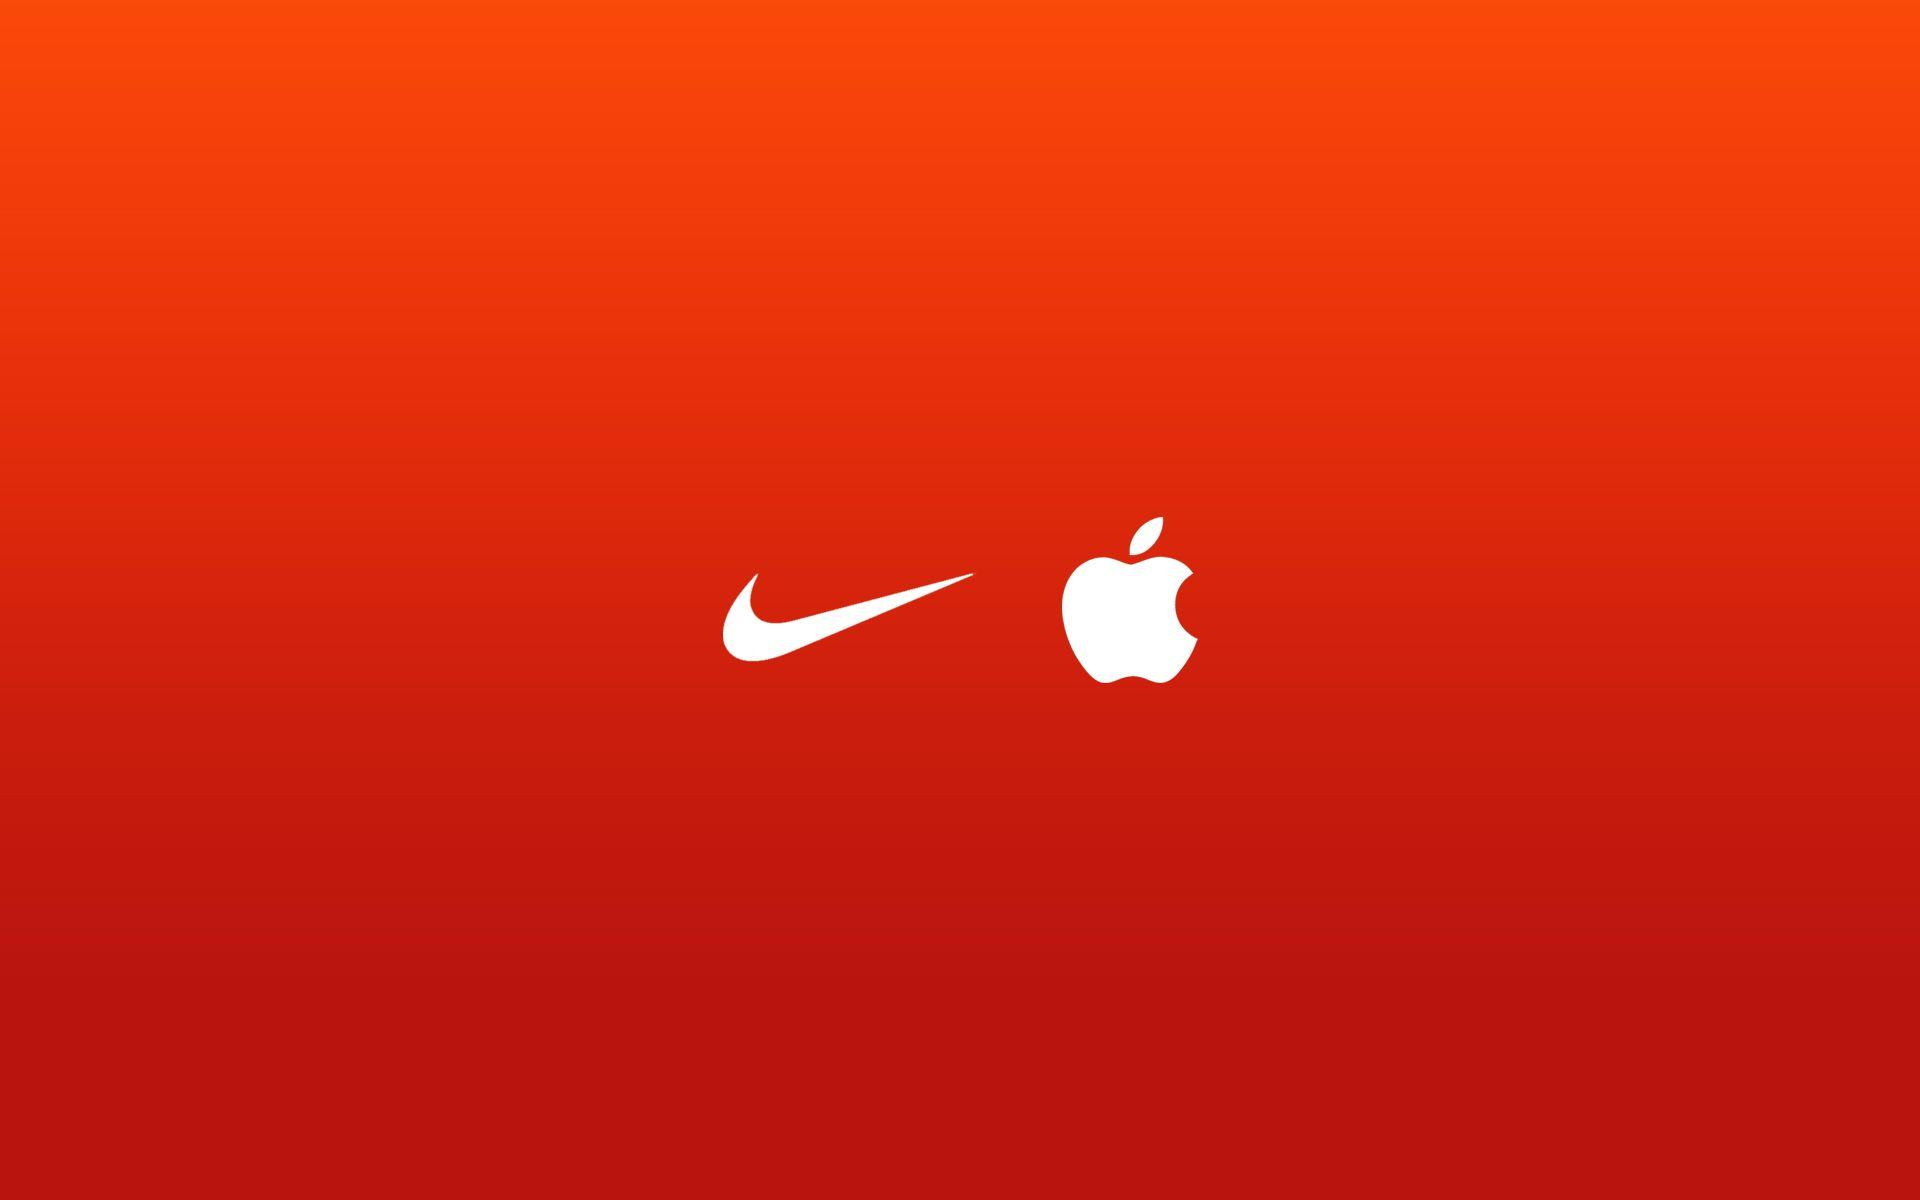 Nike Logo Wallpaper For Iphone